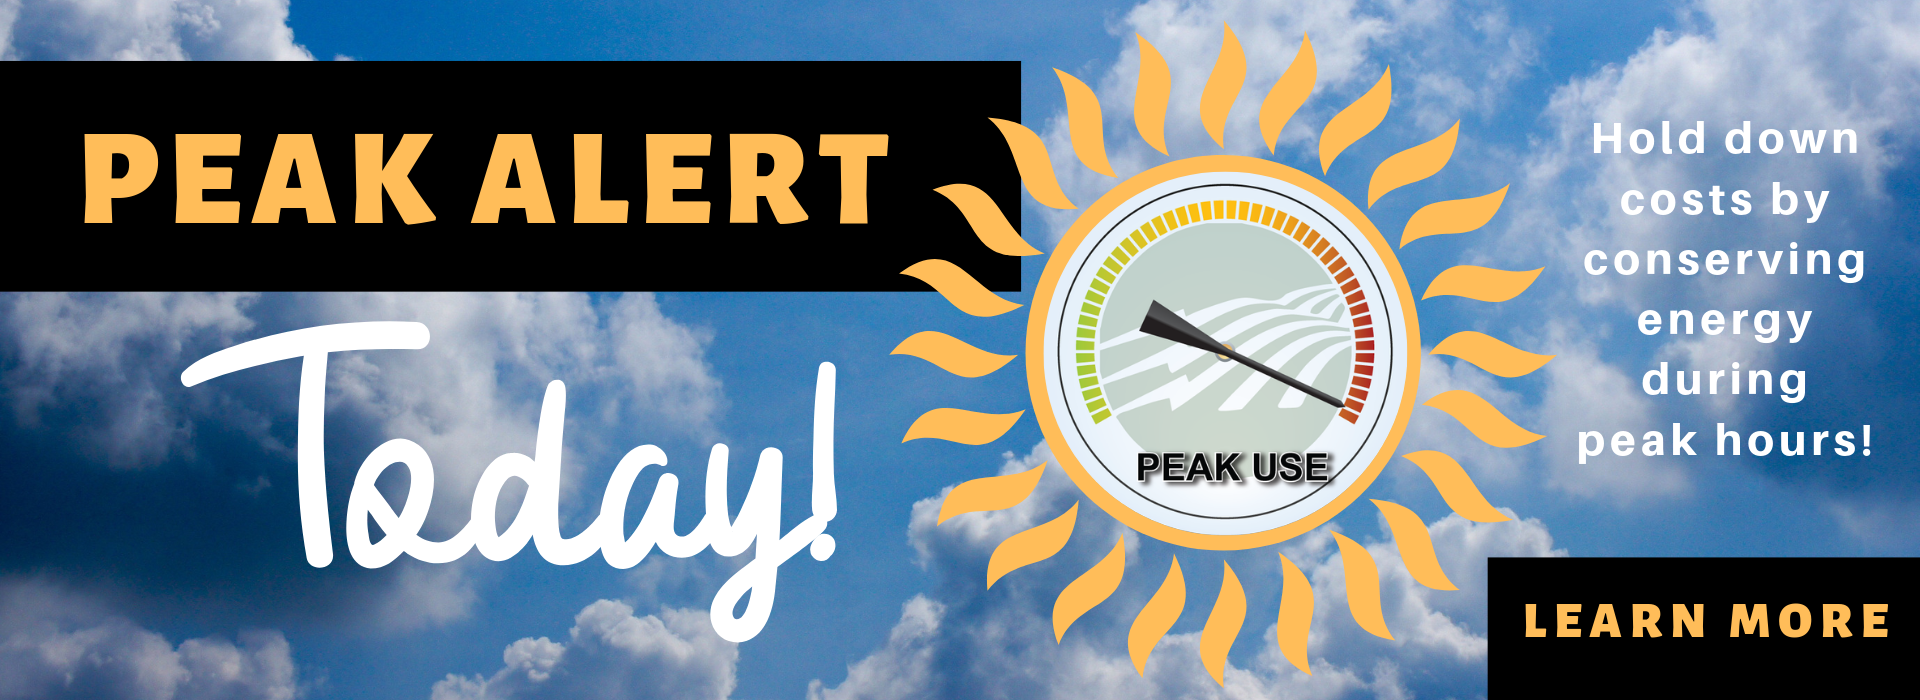 Conserve energy today from 3 to 7 pm to keep rates affordable due to a Peak Alert